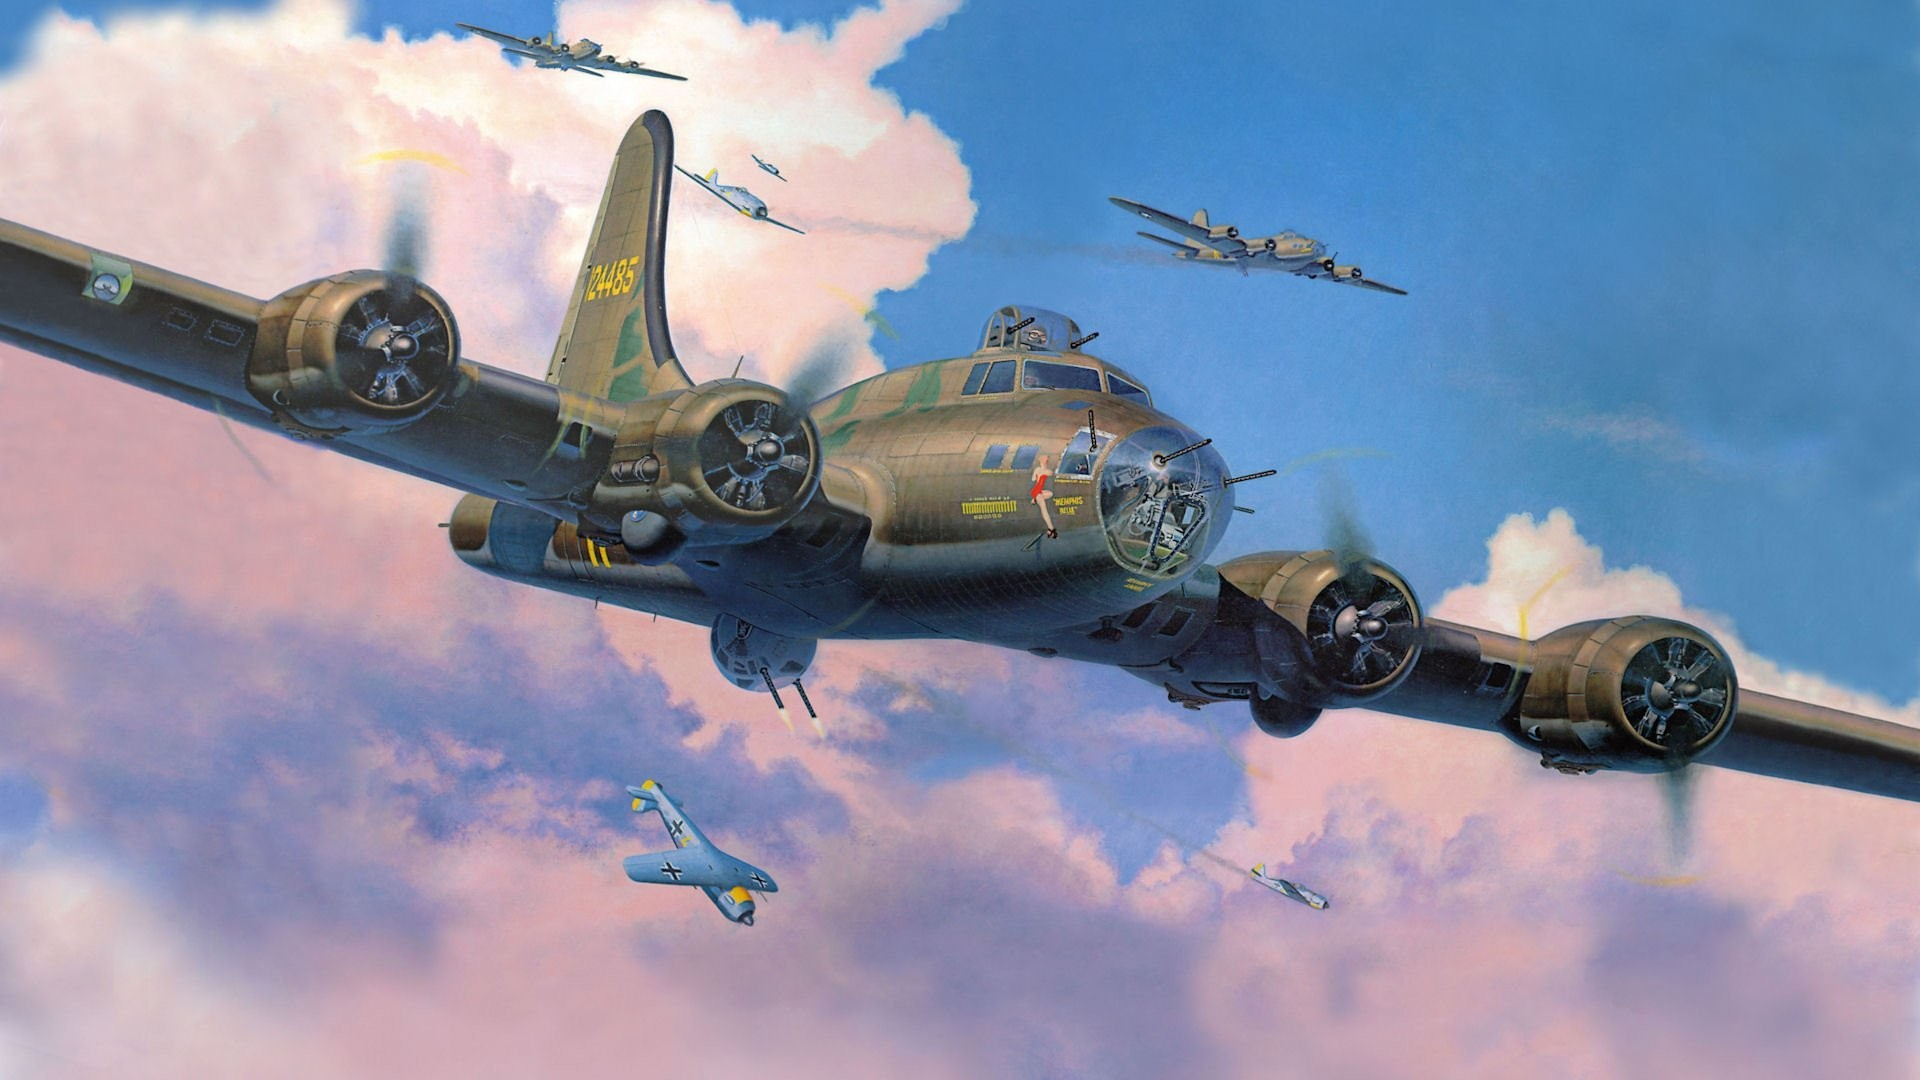 boeing b-17 flying fortress flying fortress bombers fighters interception  fw-190 picture